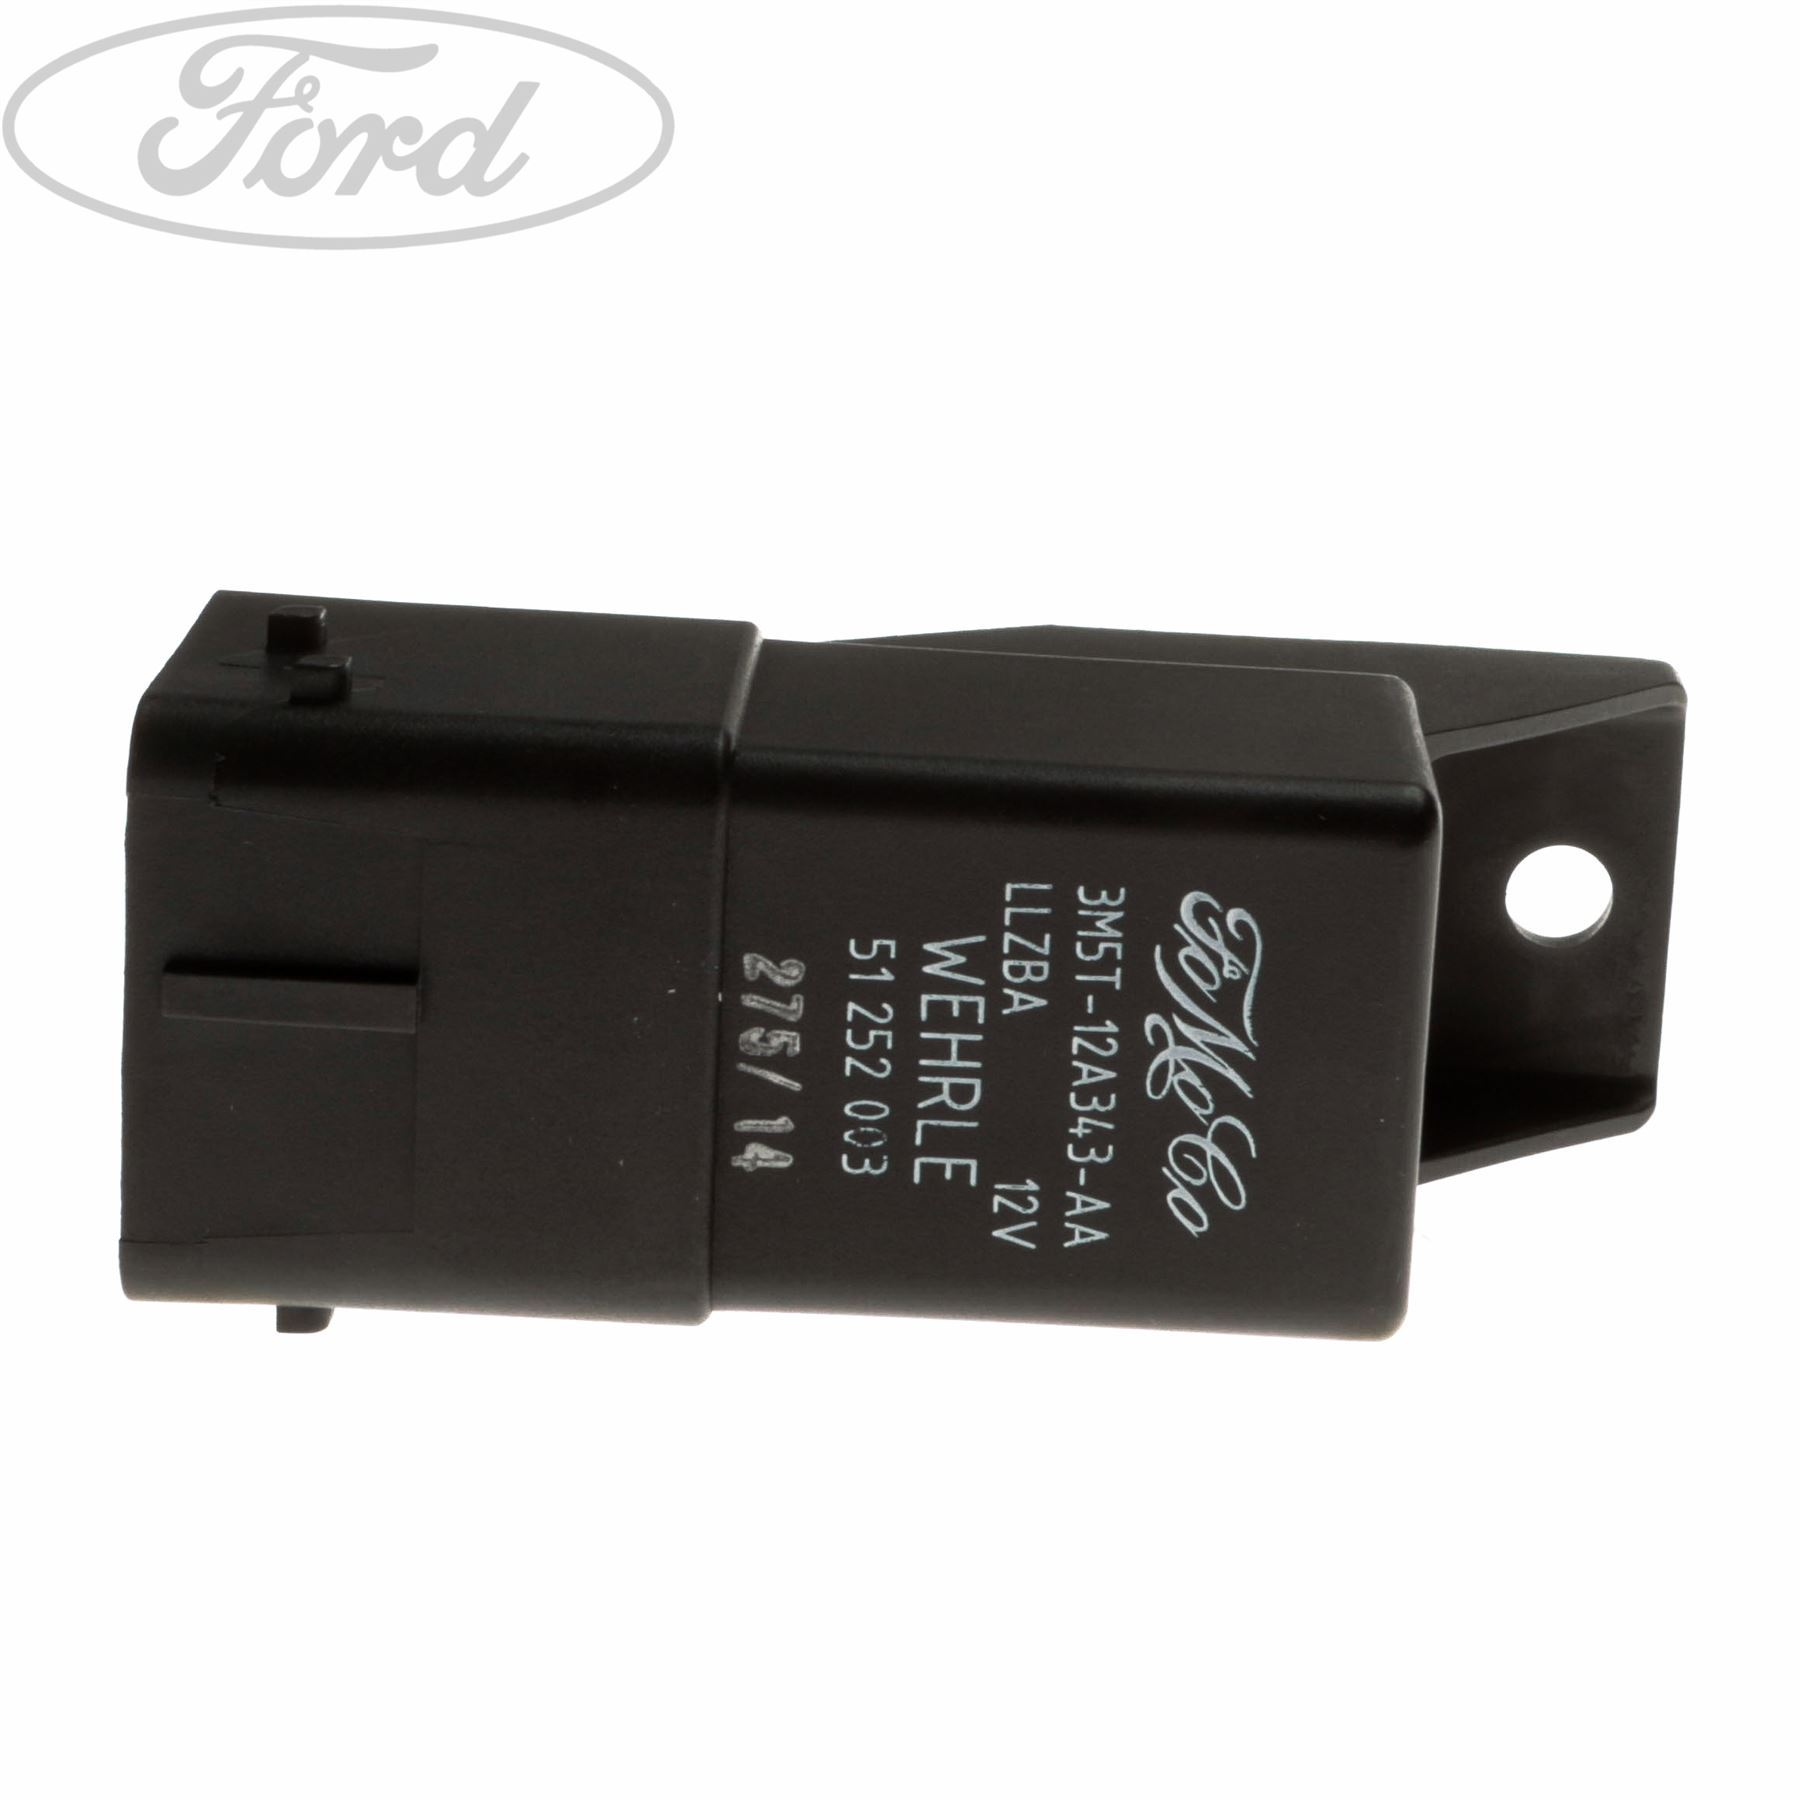 hight resolution of details about genuine ford focus mk2 fiesta mk6 fusion heater glow plug relay 1252609